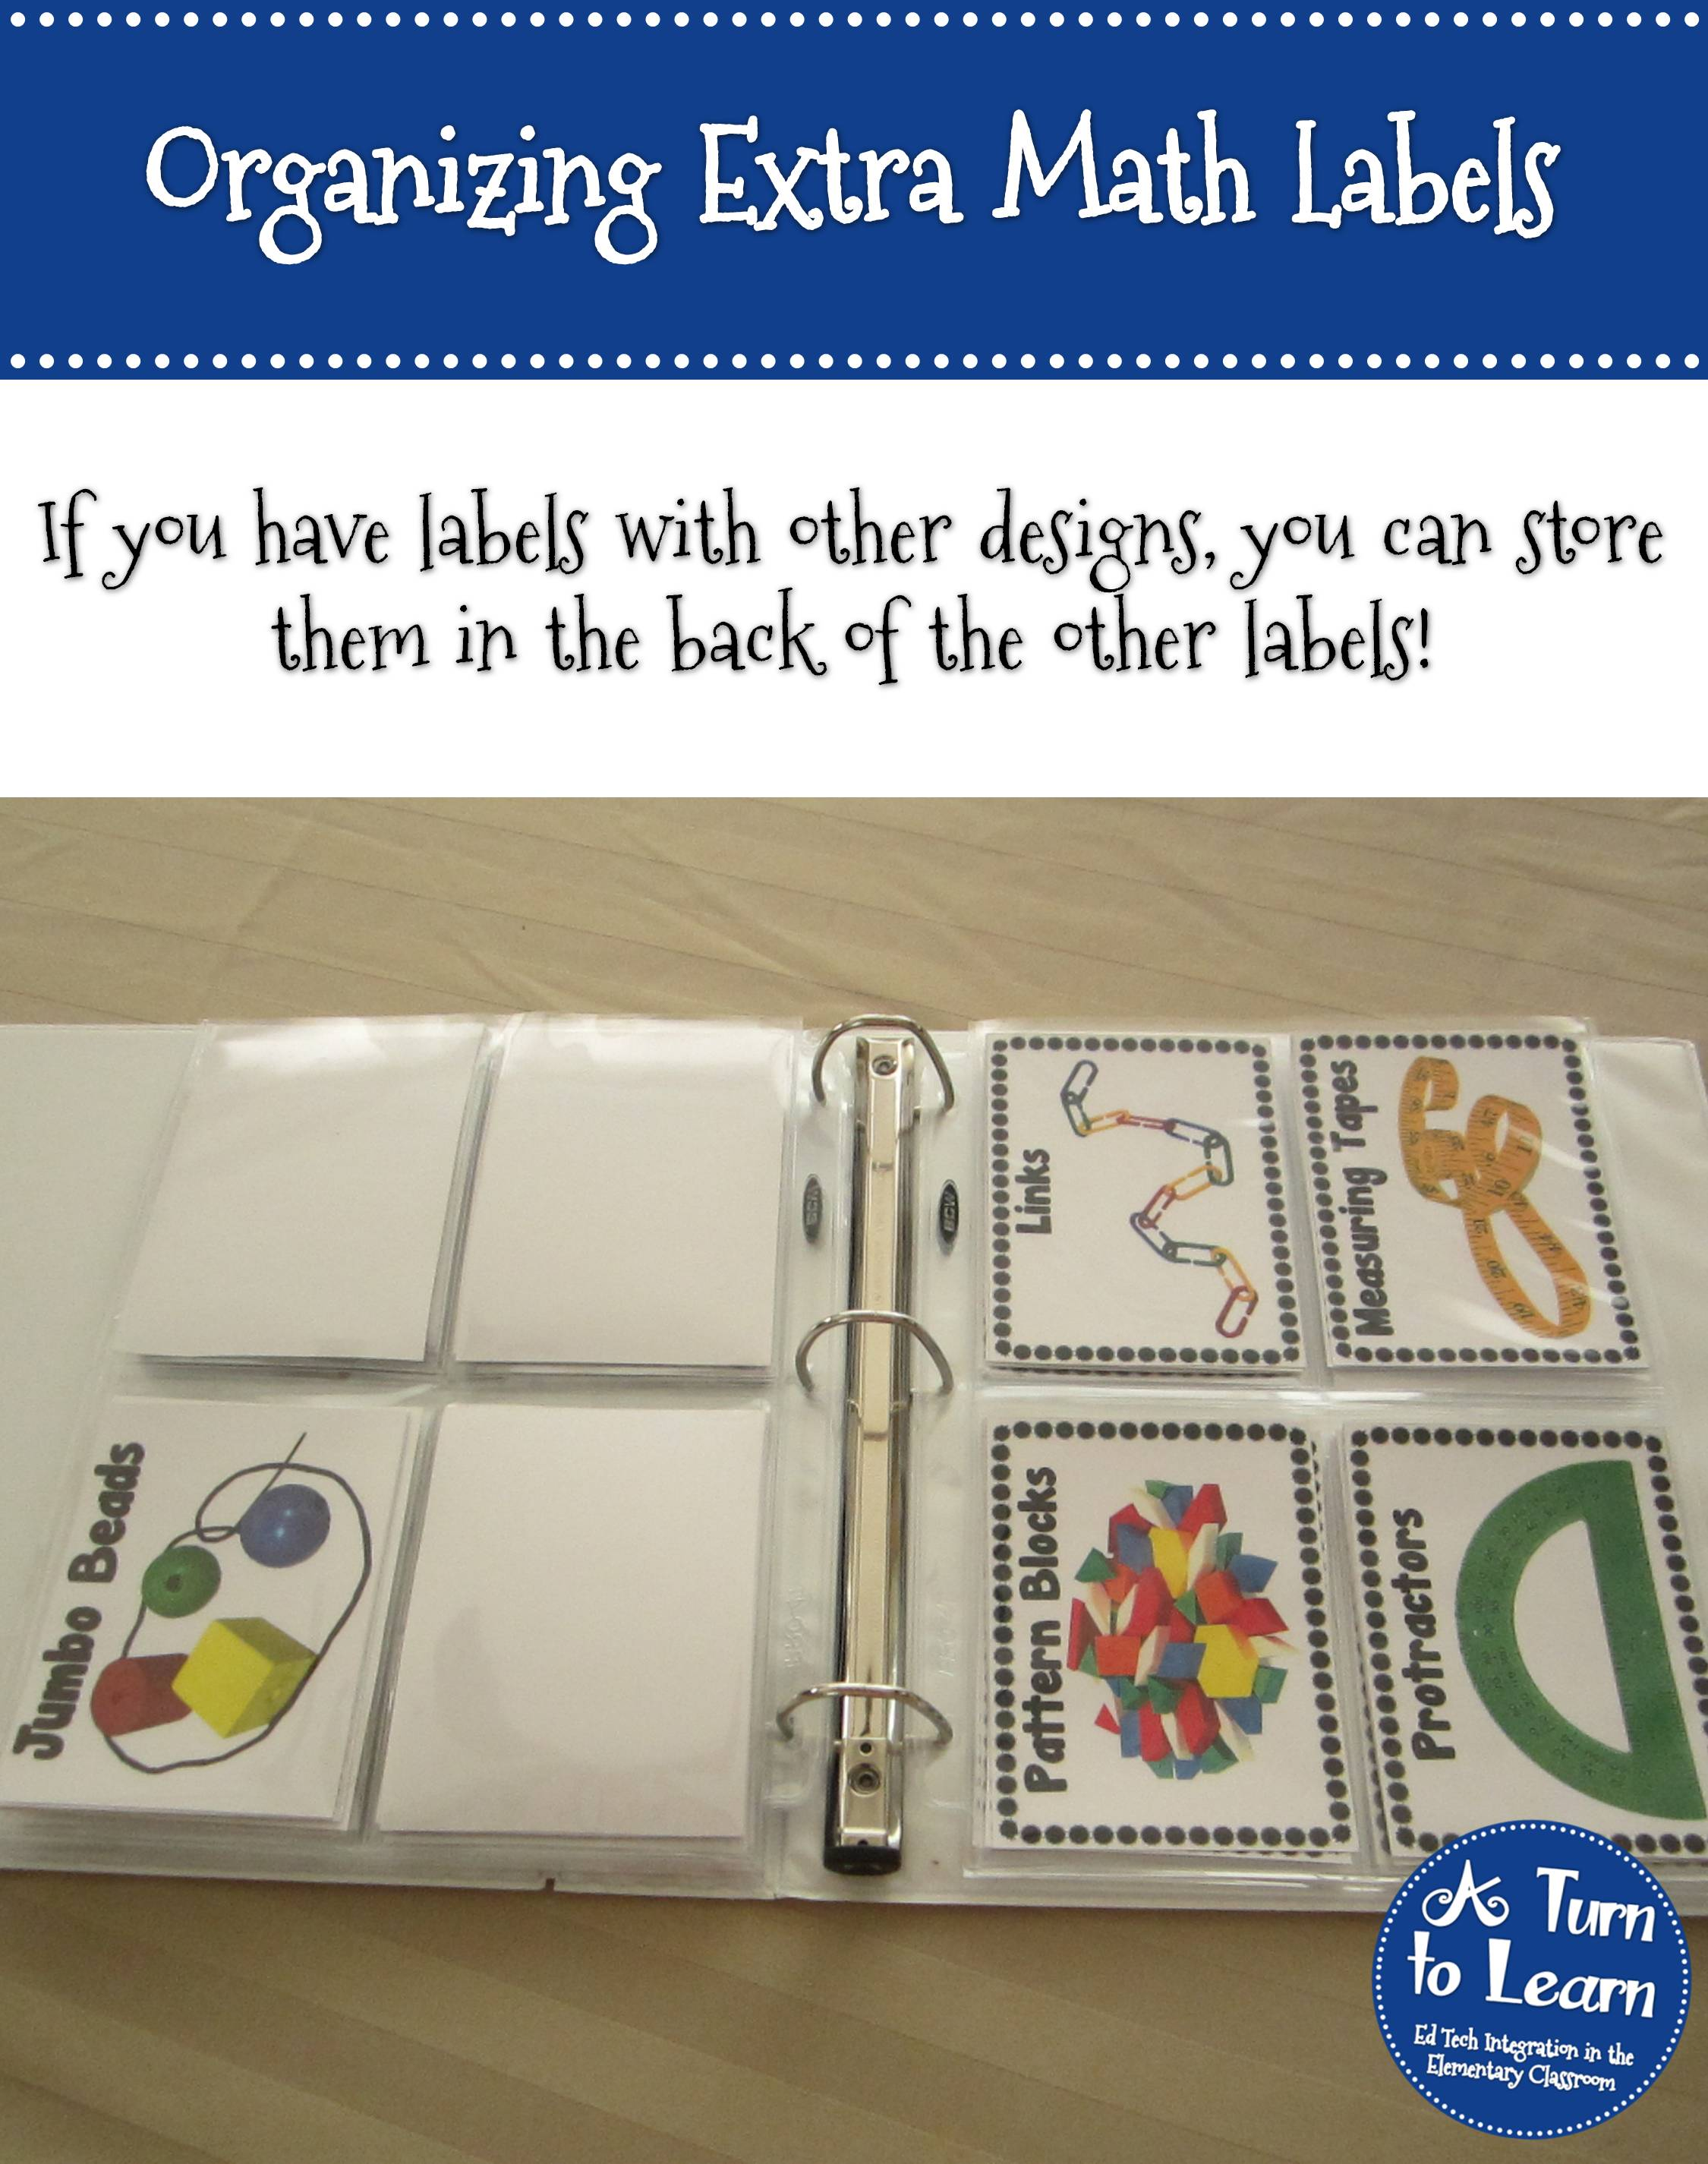 Organizing Extra Math Manipulative Labels 4 • A Turn to Learn